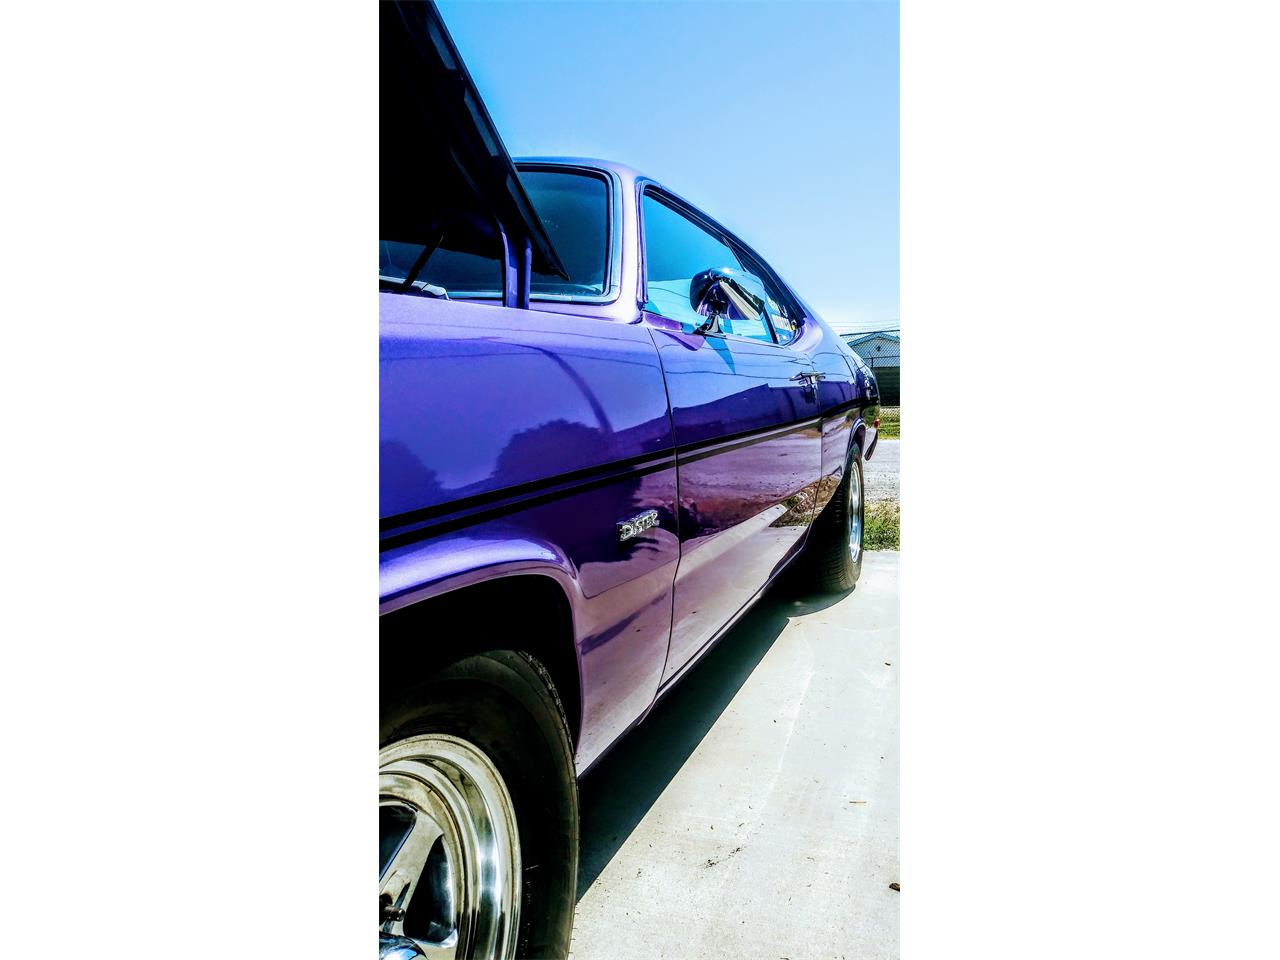 Large Picture of '73 Plymouth Duster located in Mattoon Illinois - $33,900.00 Offered by a Private Seller - QPJR